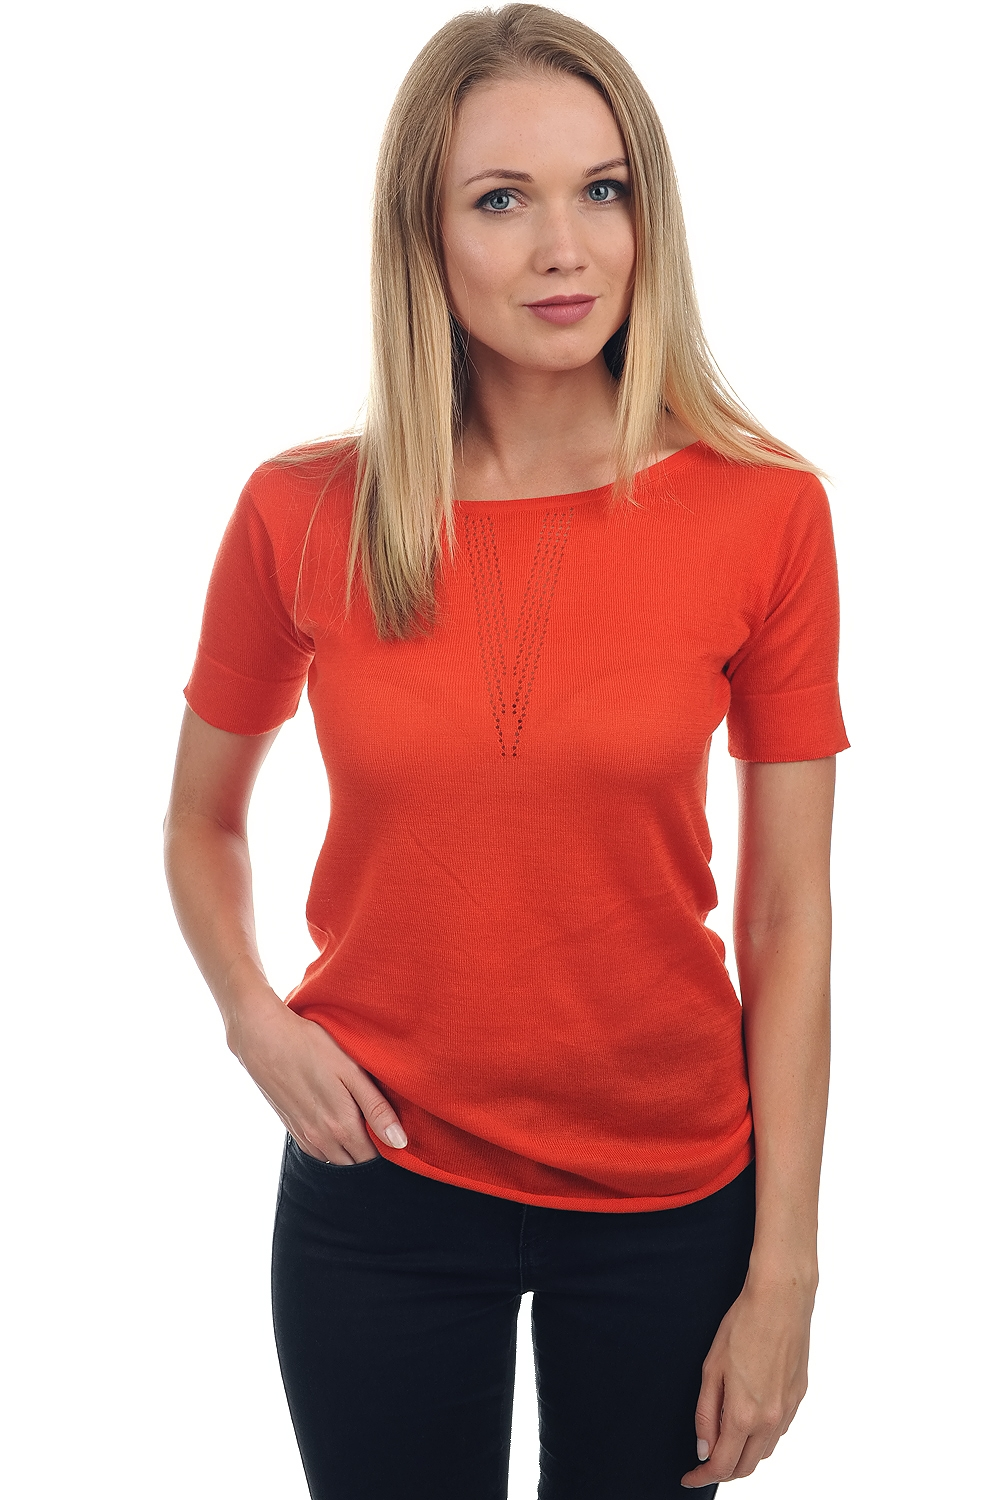 Cotton Giza 45 ladies round necks whitney brick s